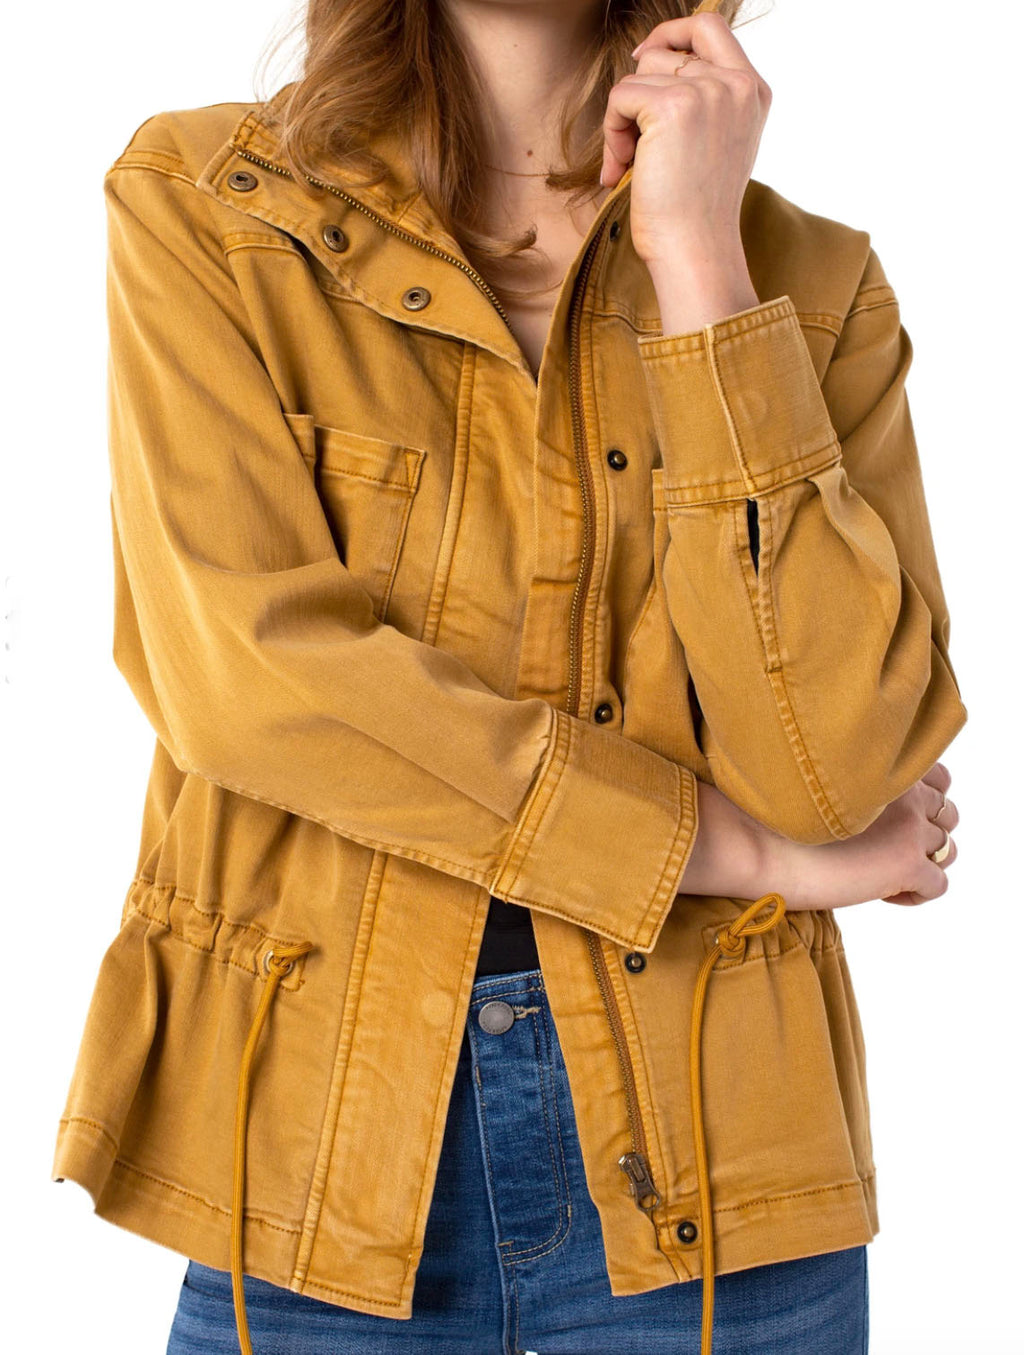 Liverpool Zip Anorak Jacket in Honey